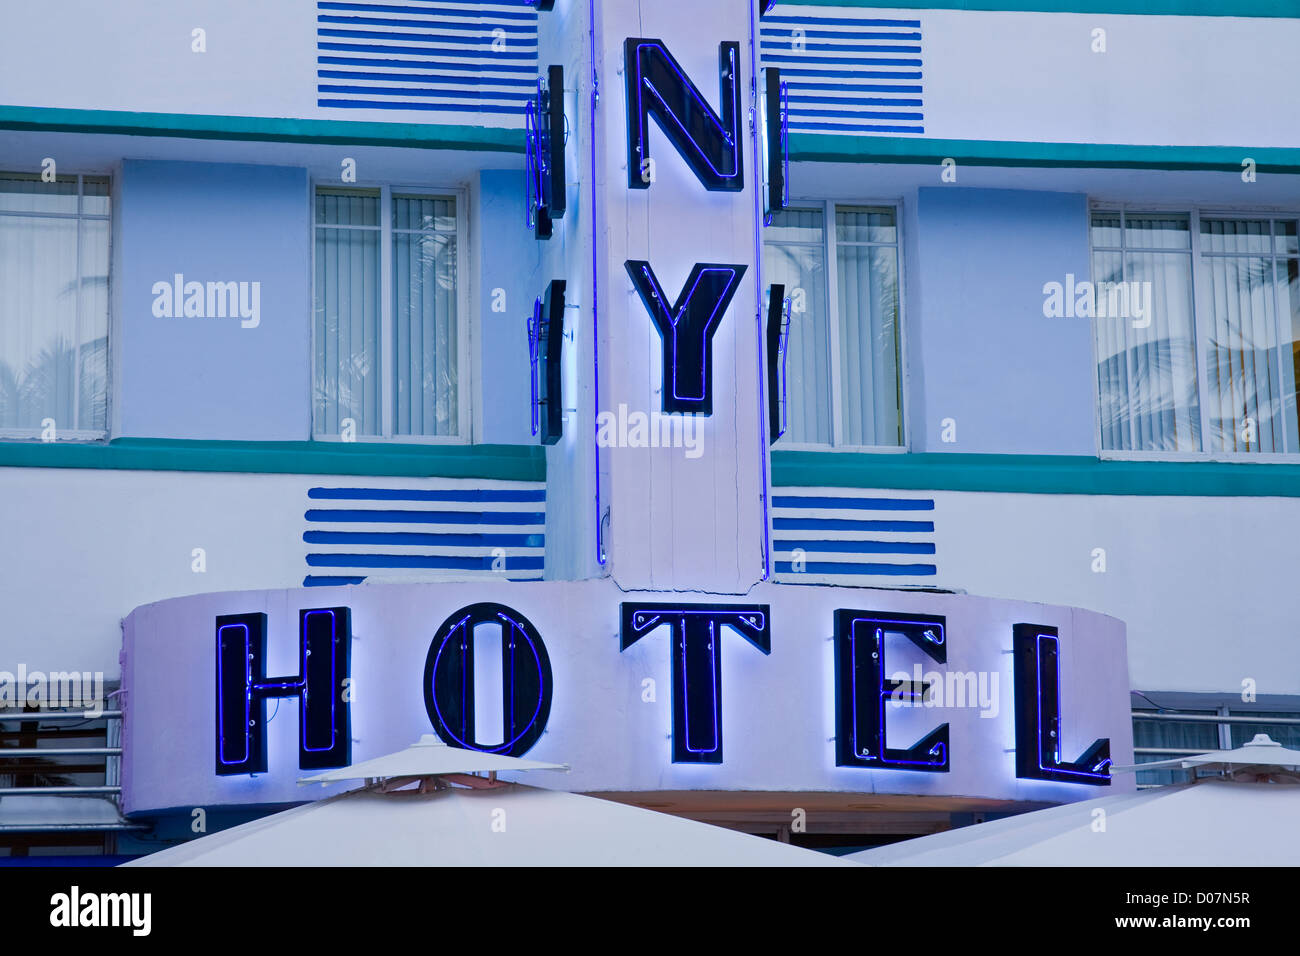 Art Deco Colony Hotel on Ocean Drive,South Beach,Miami Beach City,Florida,USA - Stock Image